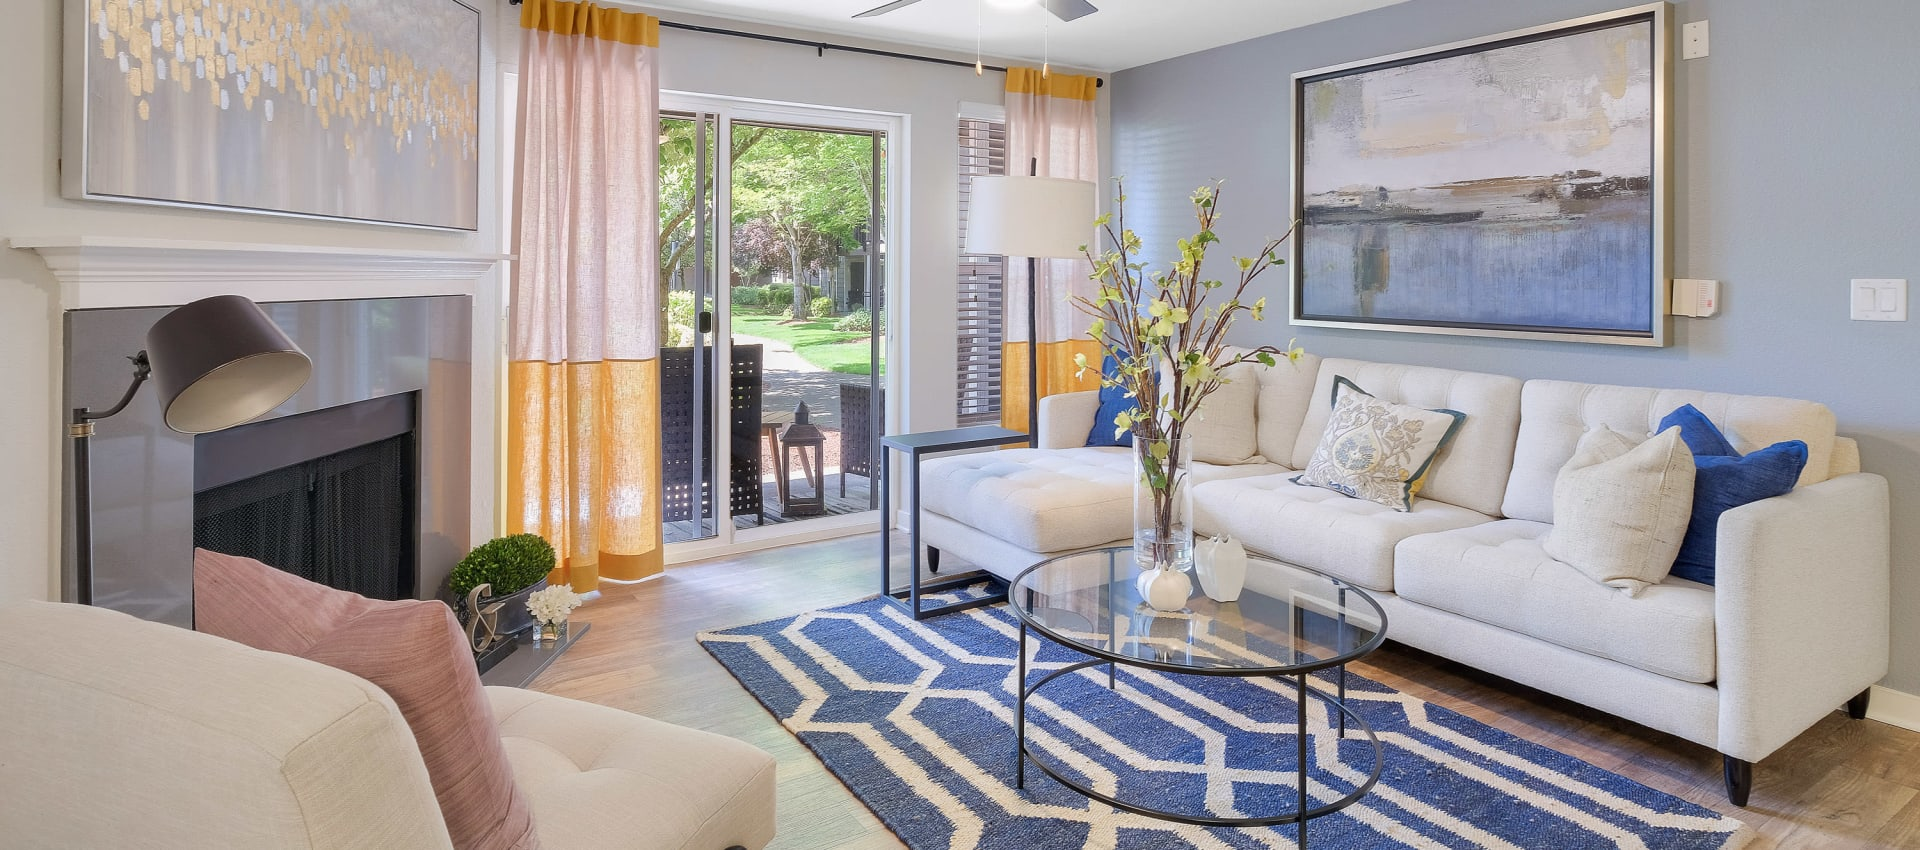 Naturally well lit living room at Centro Apartment Homes in Hillsboro, Oregon